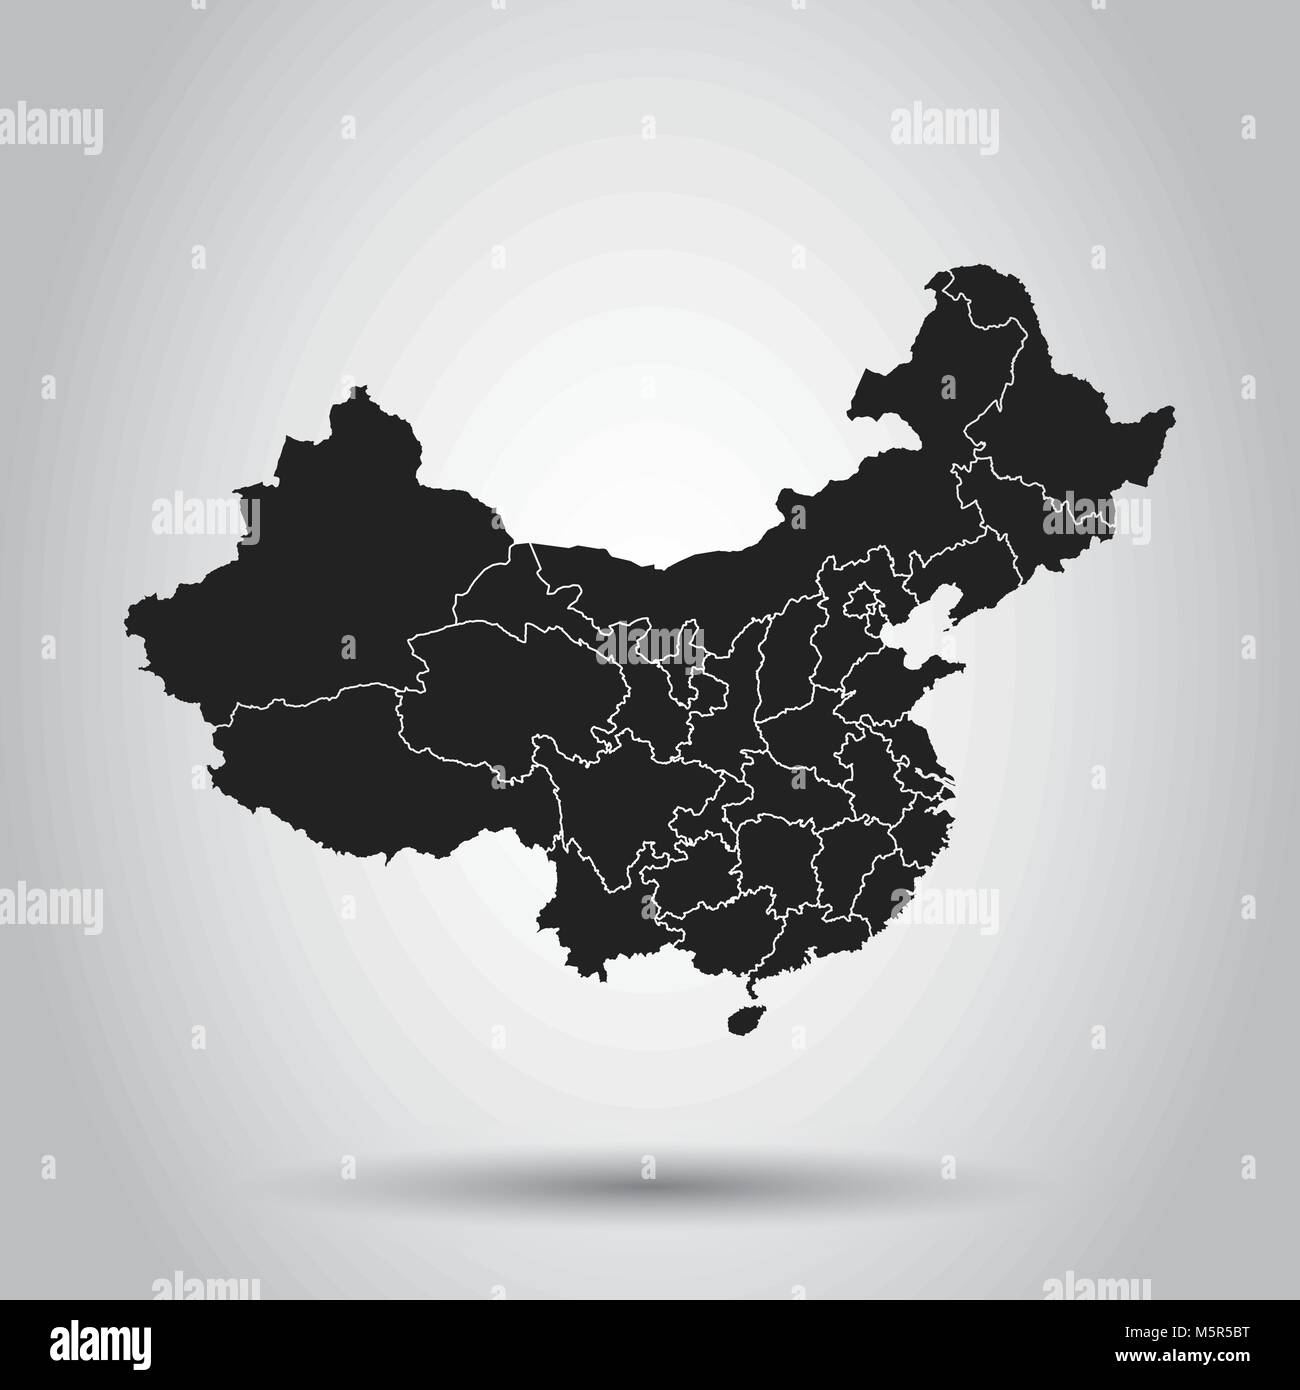 China map. Flat vector illustration on white background - Stock Vector